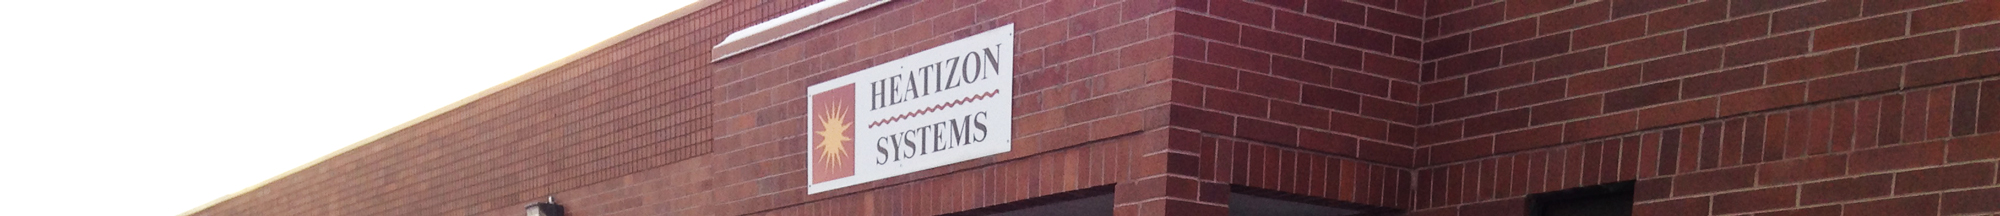 Partner with Heatizon Systems